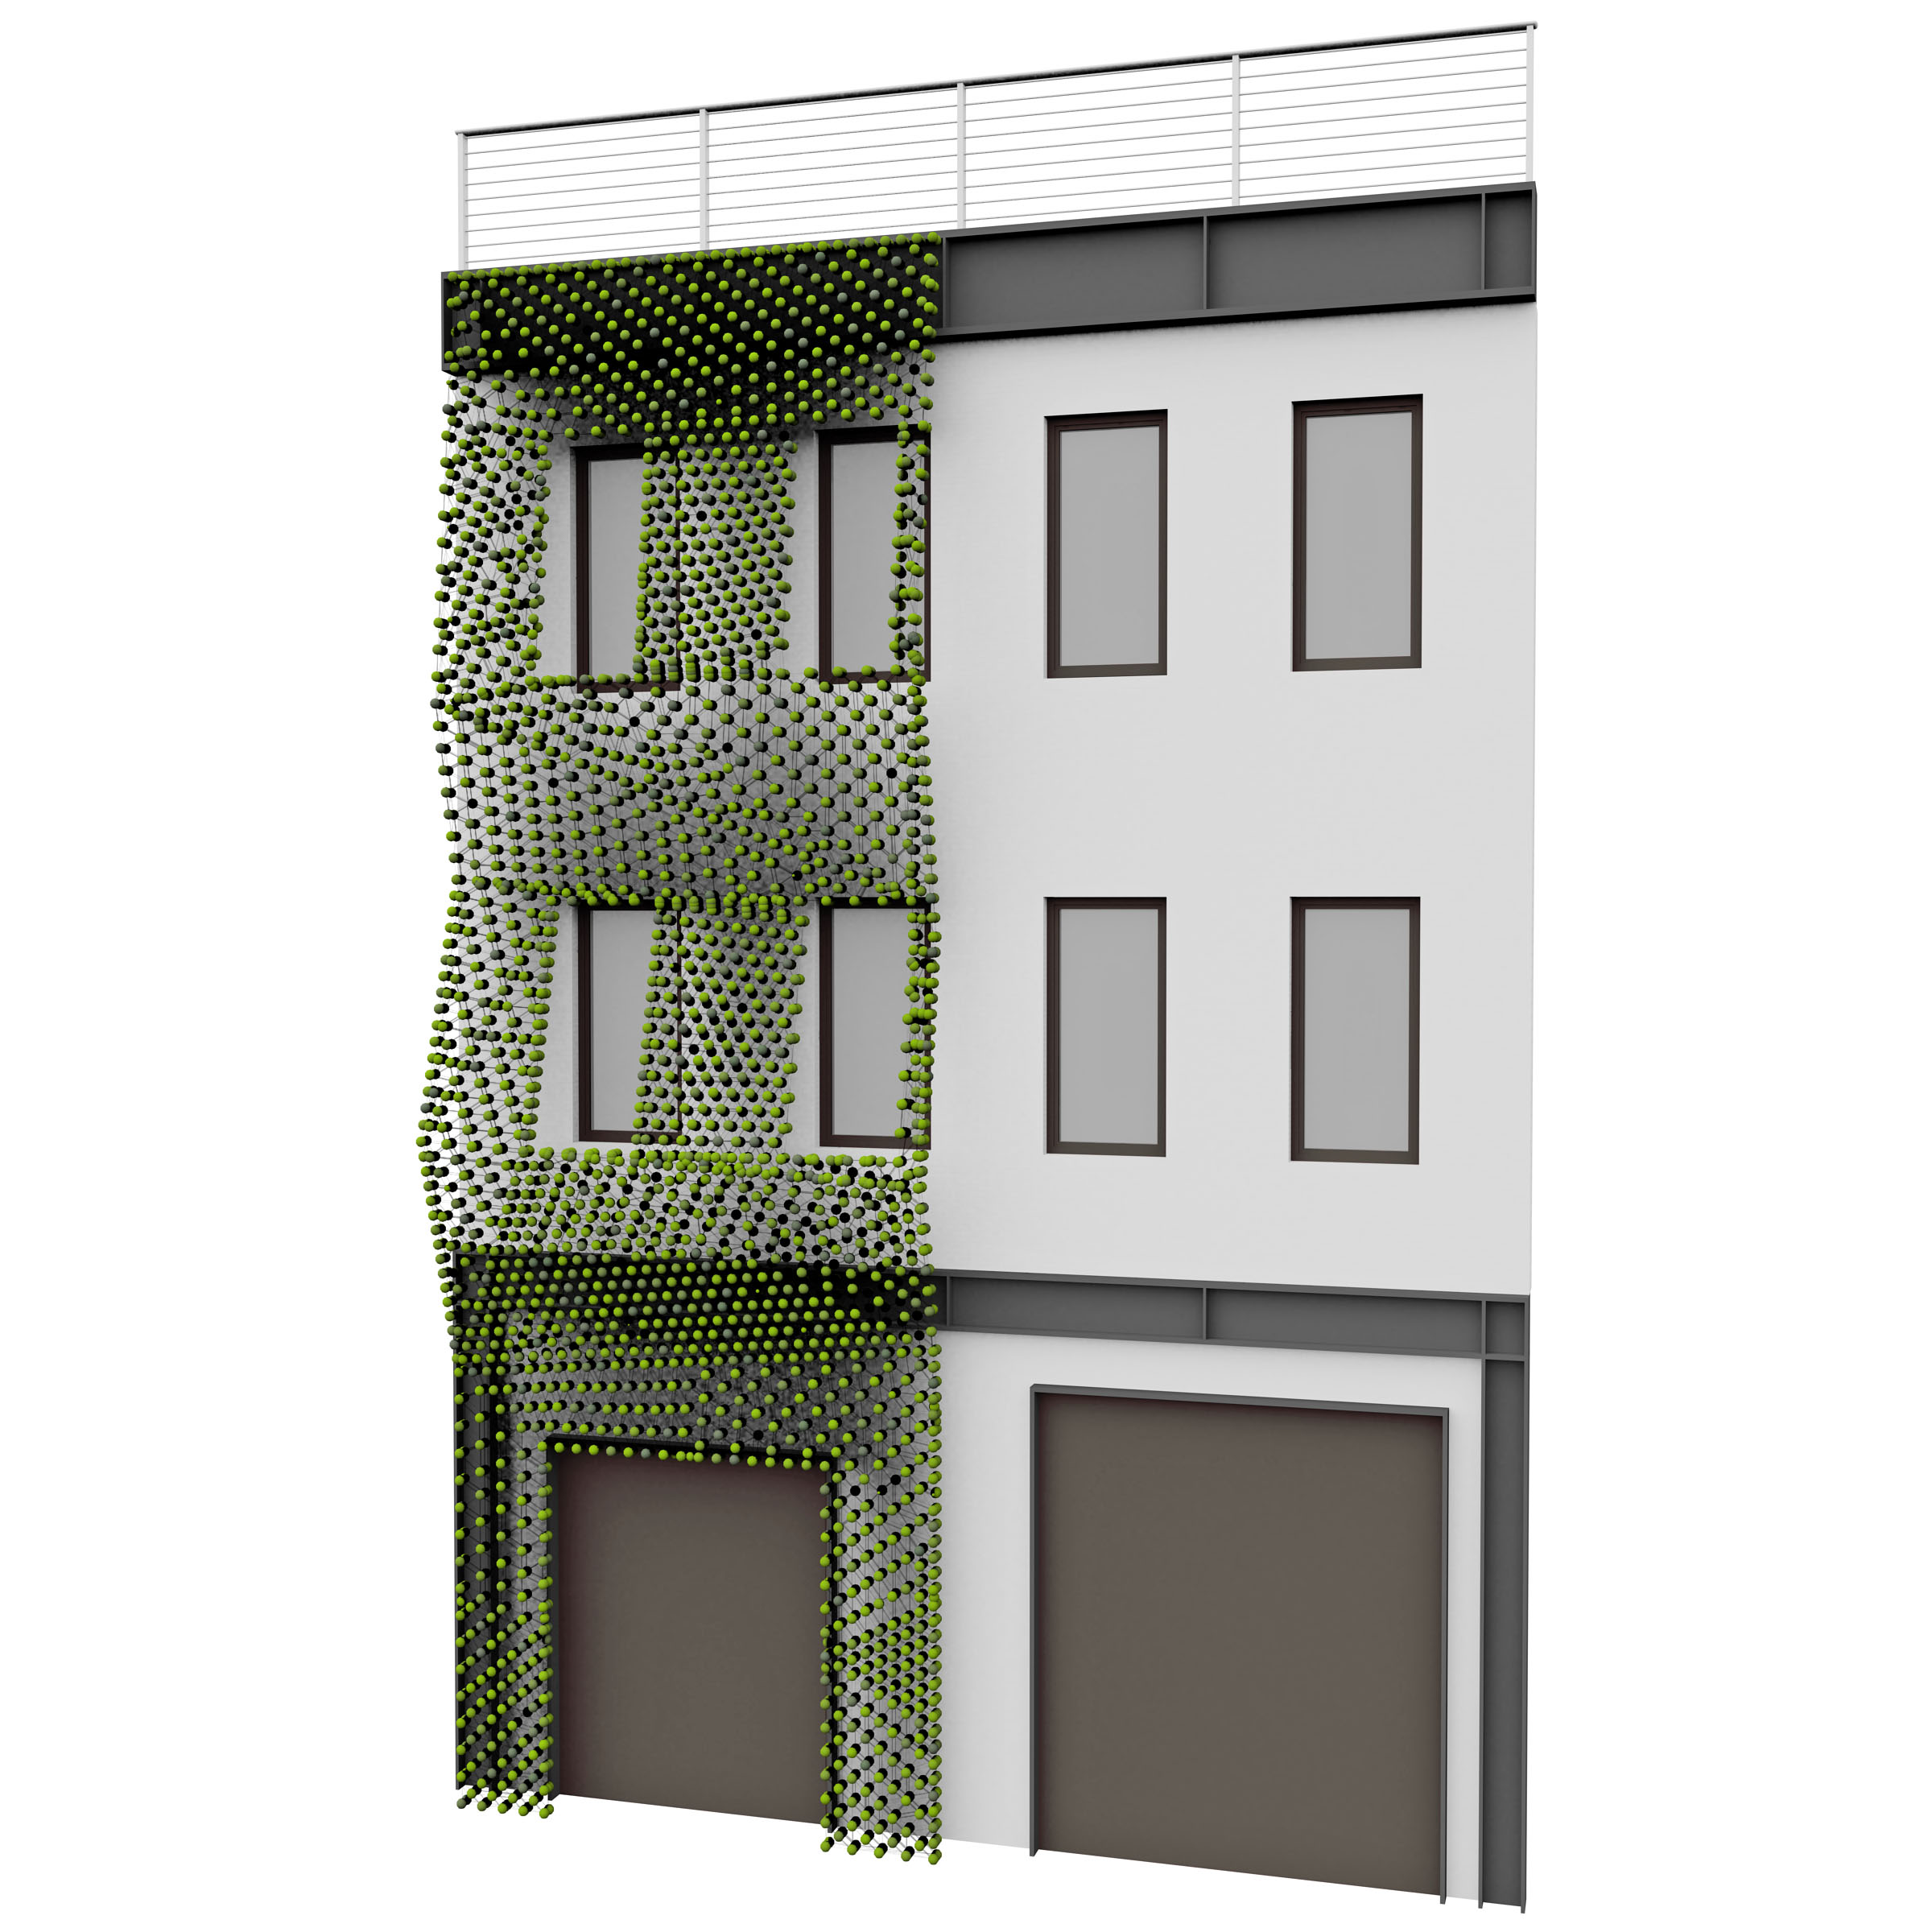 BA_West Village Townhouse_Facade 1.jpg